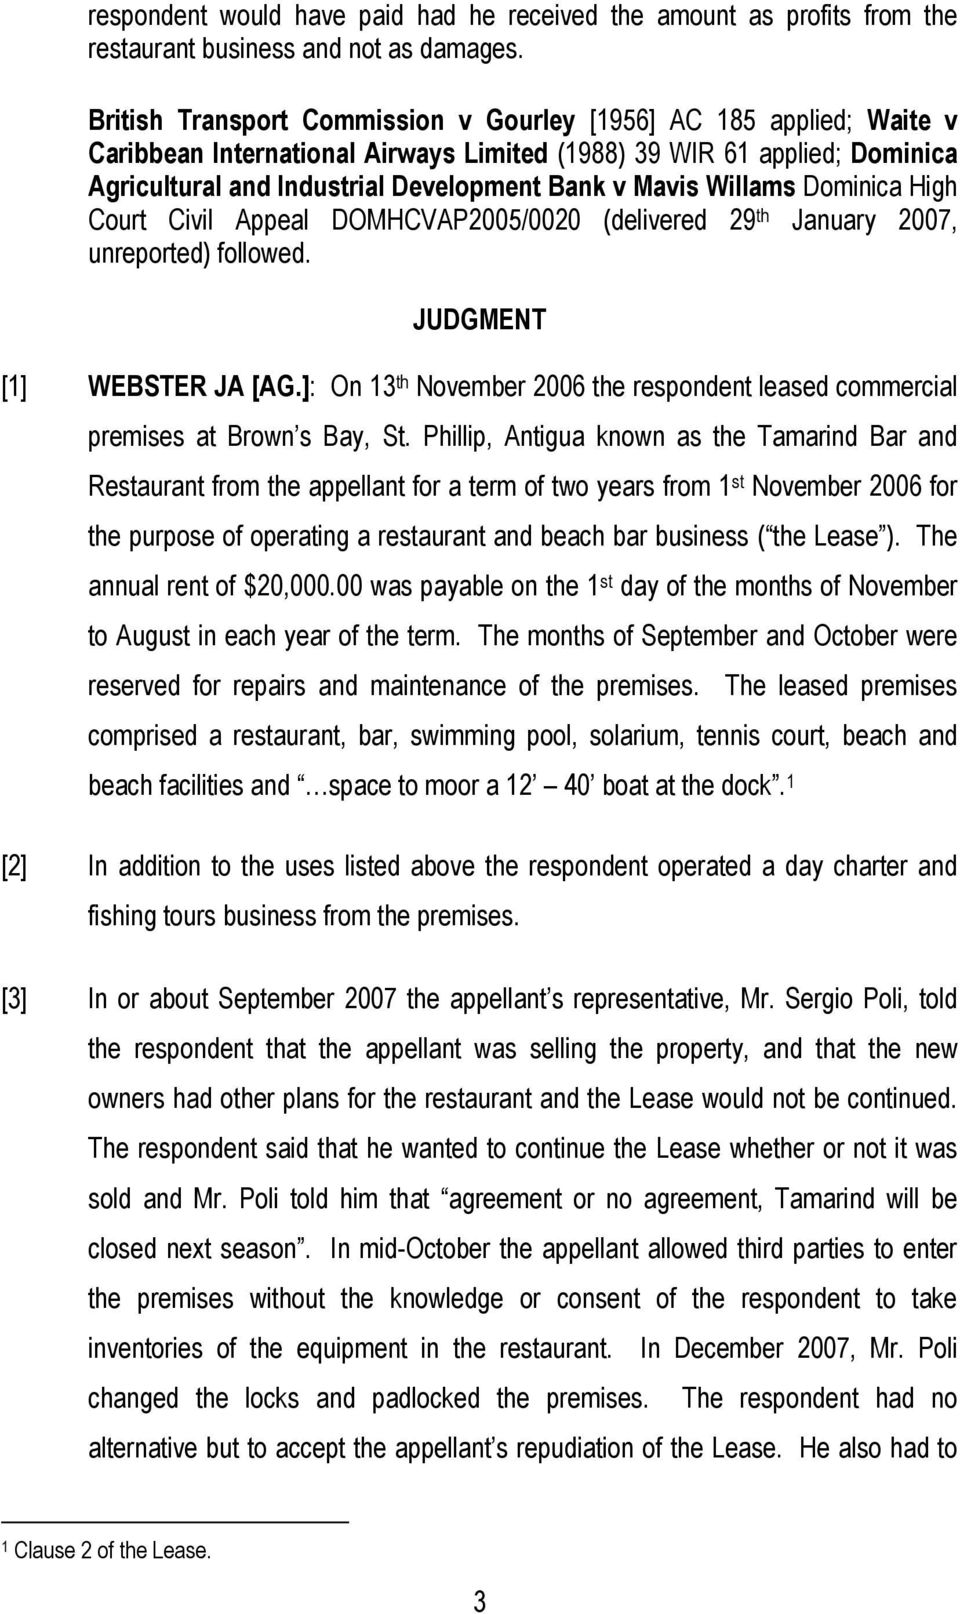 Willams Dominica High Court Civil Appeal DOMHCVAP2005/0020 (delivered 29 th January 2007, unreported) followed. JUDGMENT [1] WEBSTER JA [AG.